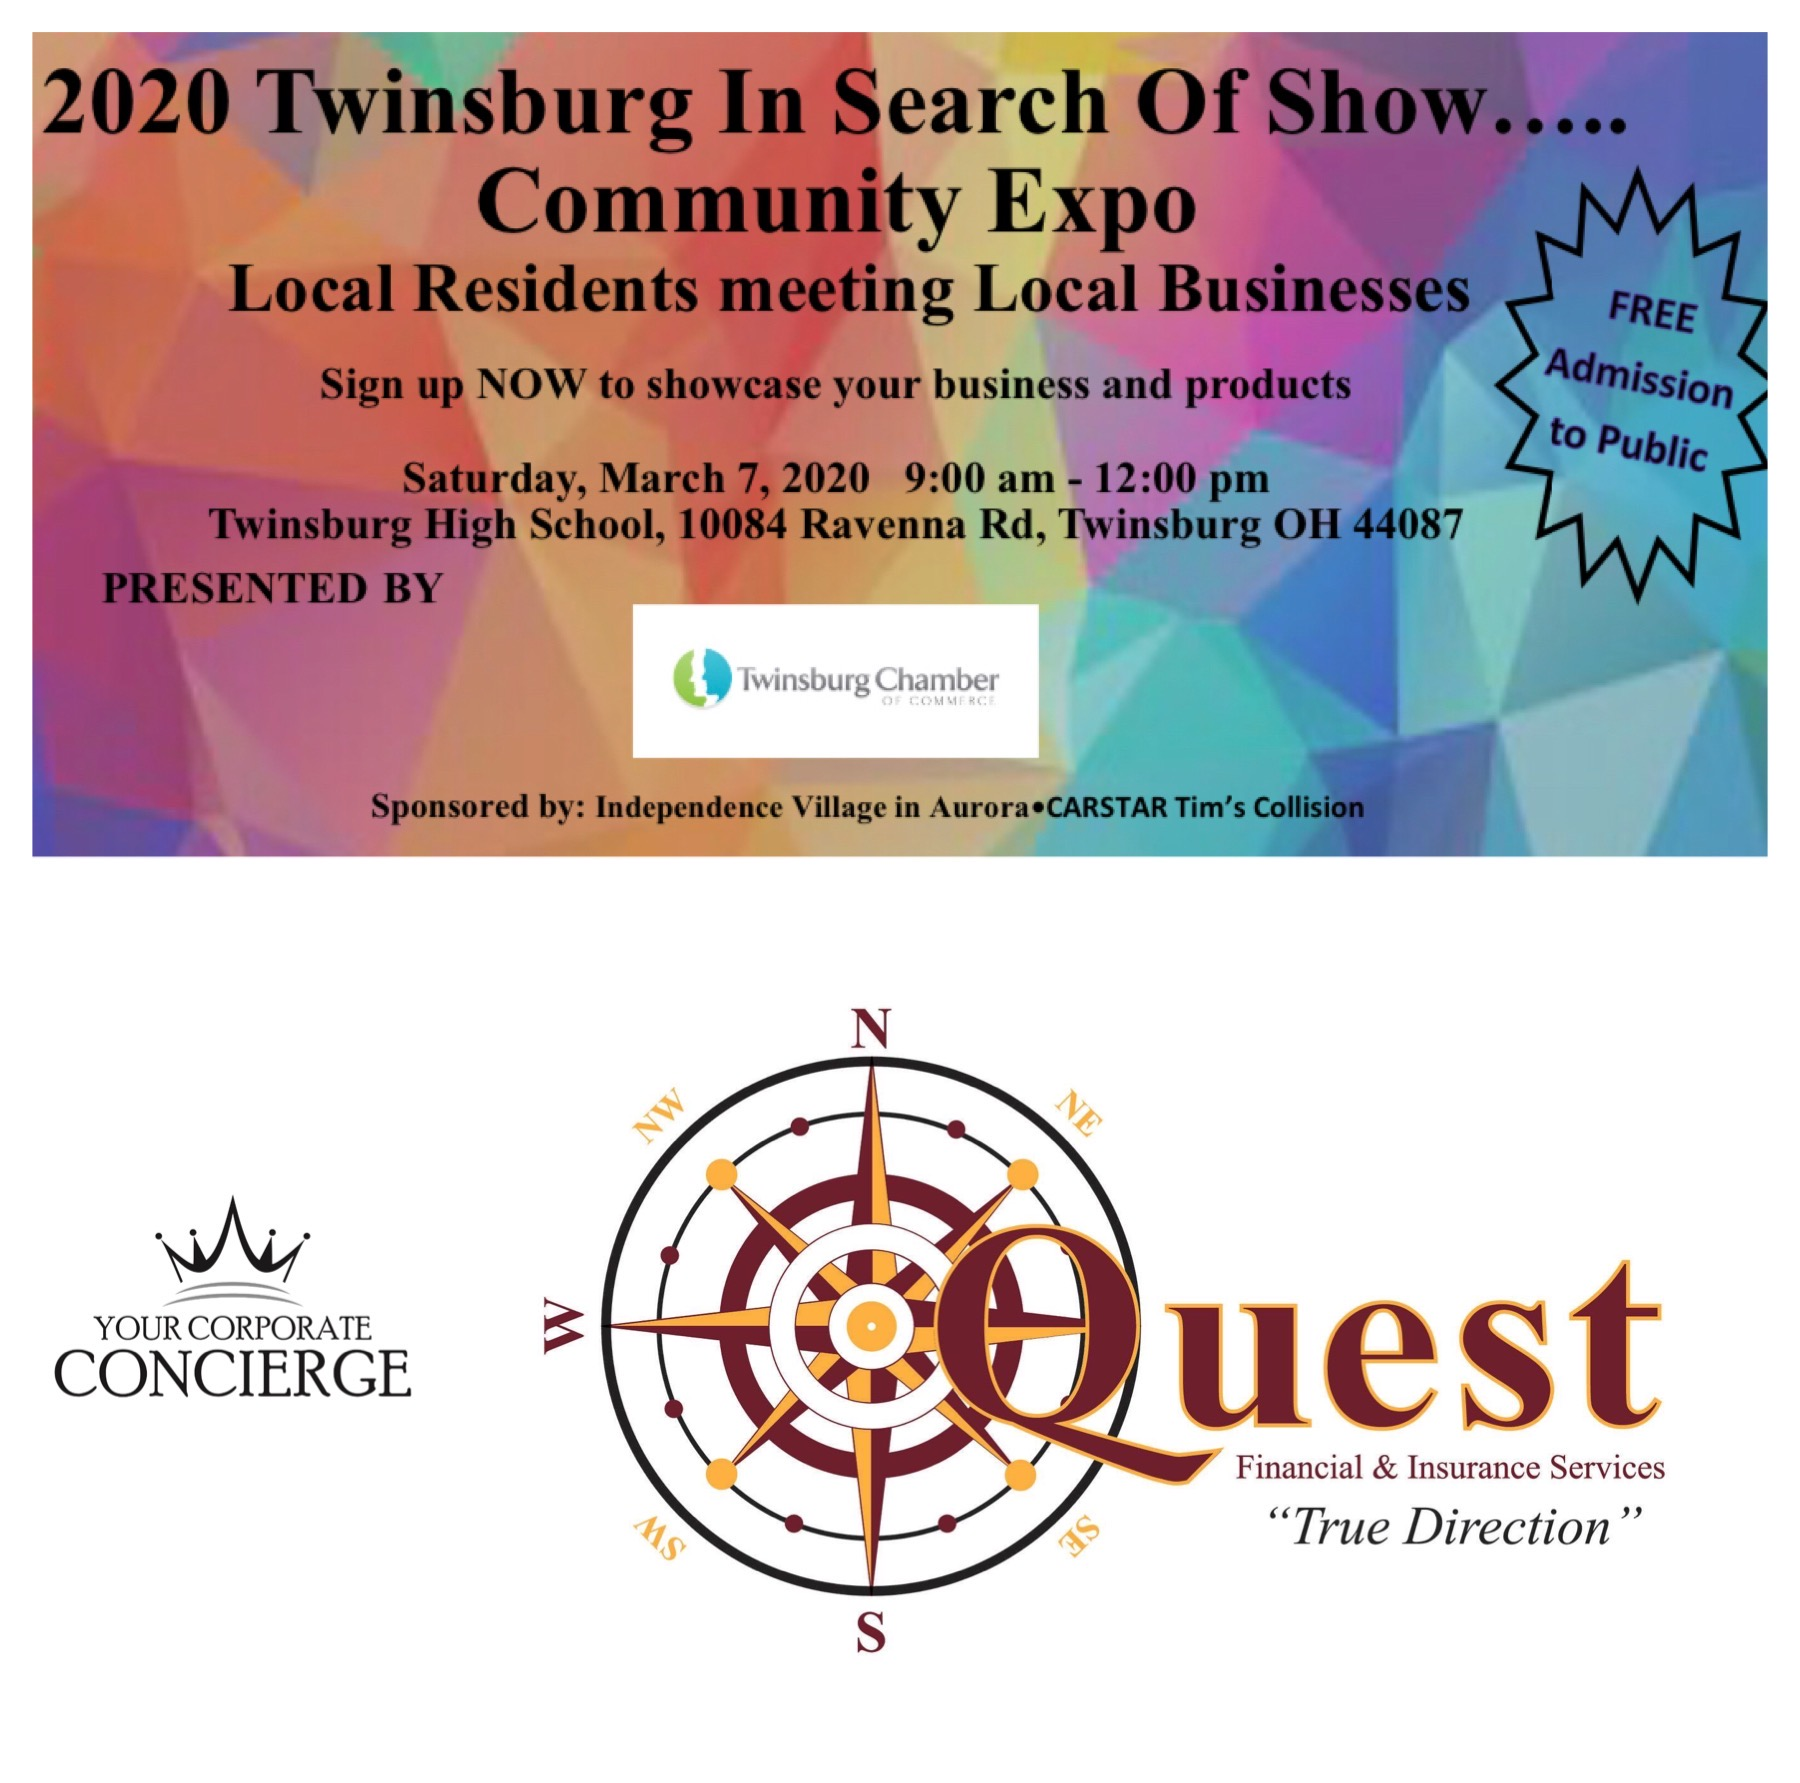 Look for your favorite Brand Ambassador representing Quest Financial & Insurance Services at the 2020 Twinsburg Community Expo 3/7/2020!!